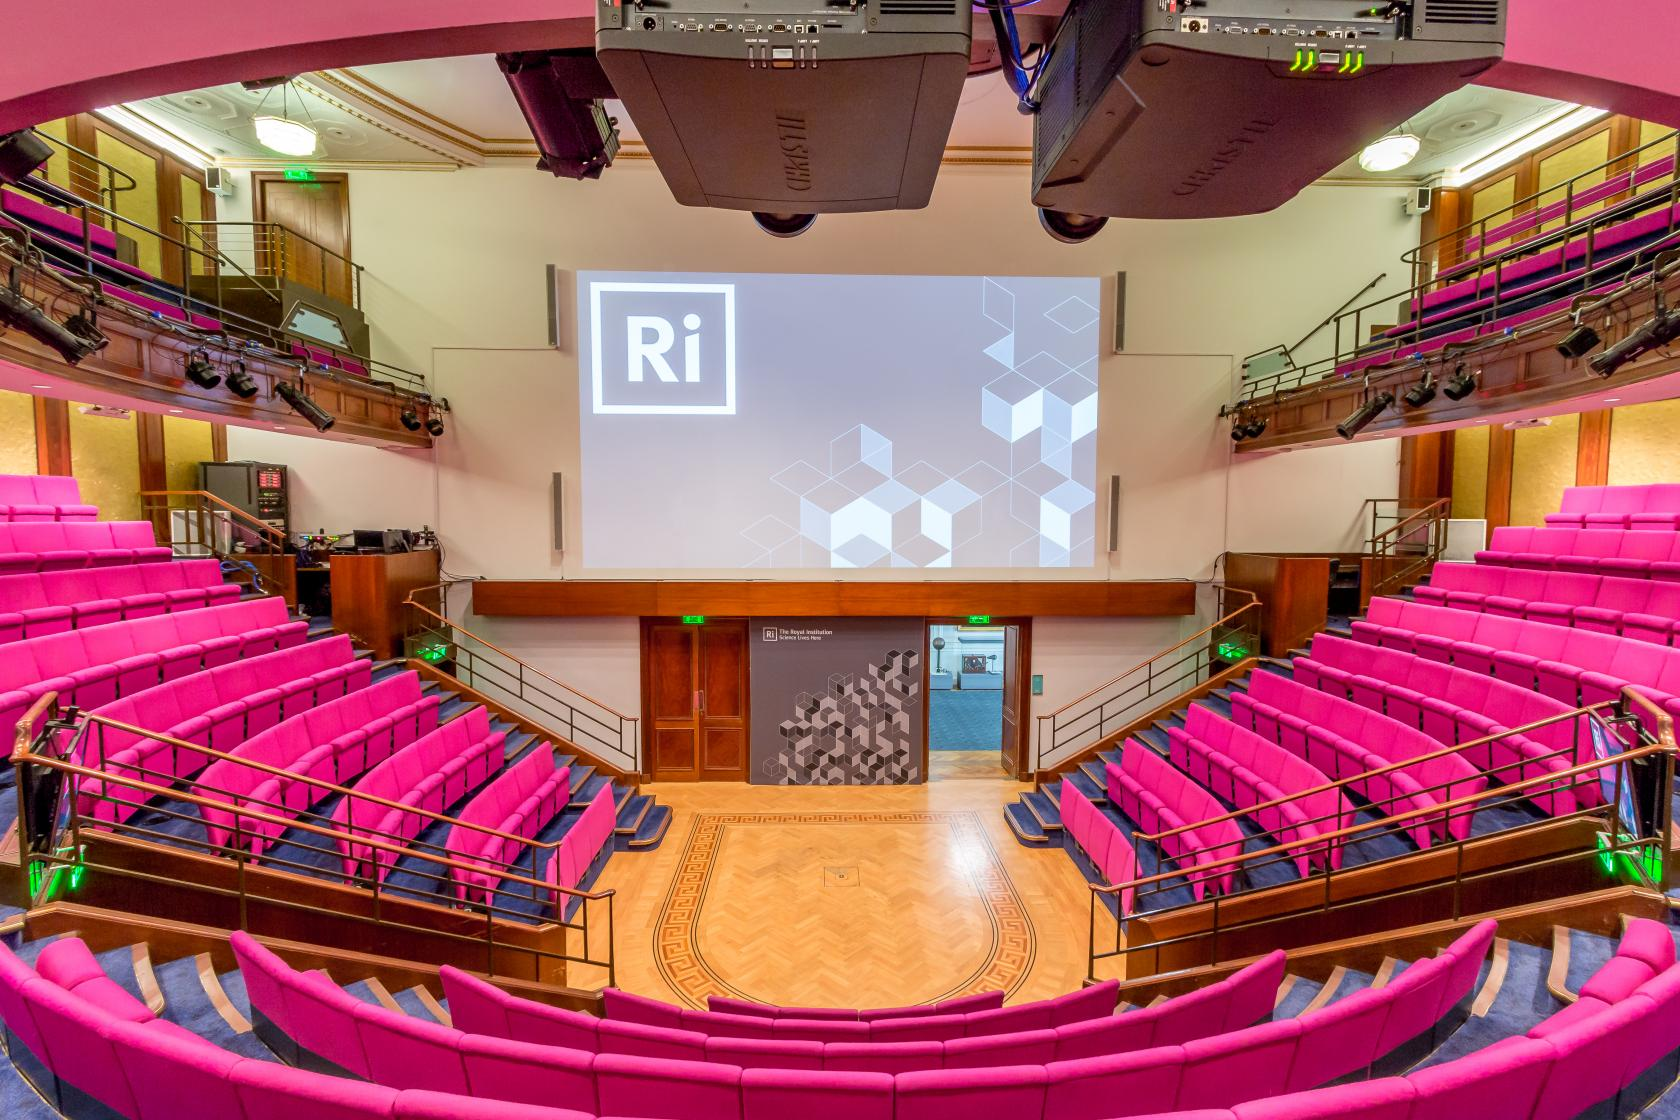 This impressive Mayfair venue has an in-house A/V team that can help set-up the tech for your conference or meeting.